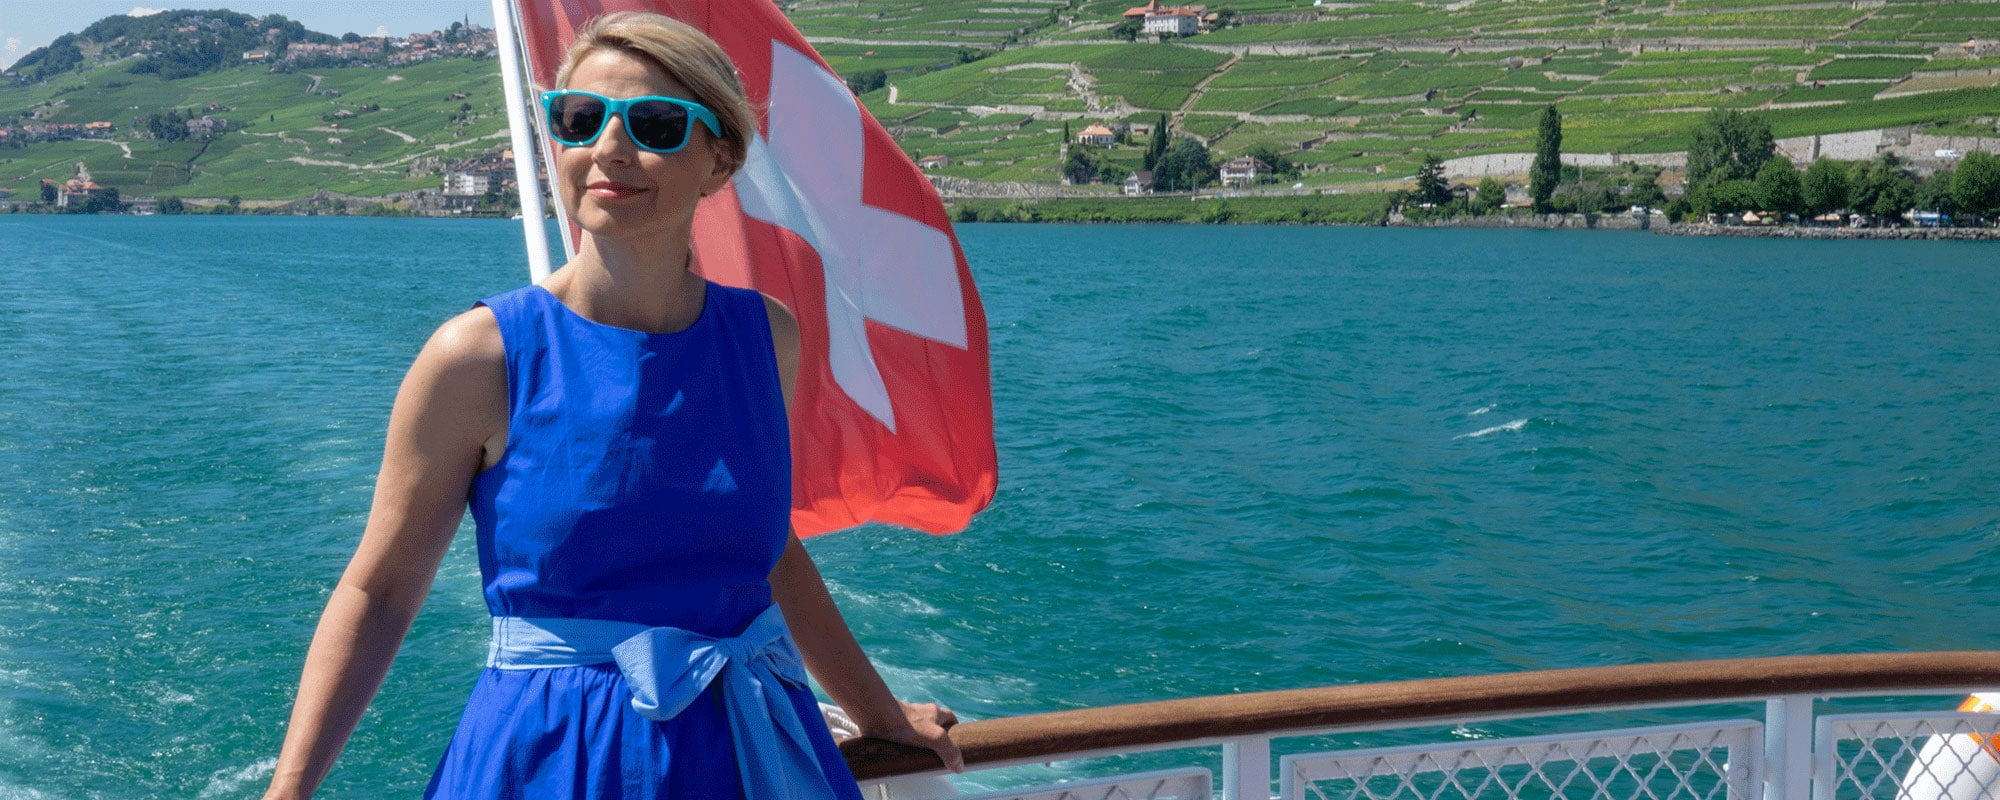 Samantha Brown's Places To Love - Lake Geneva And The Valais Area